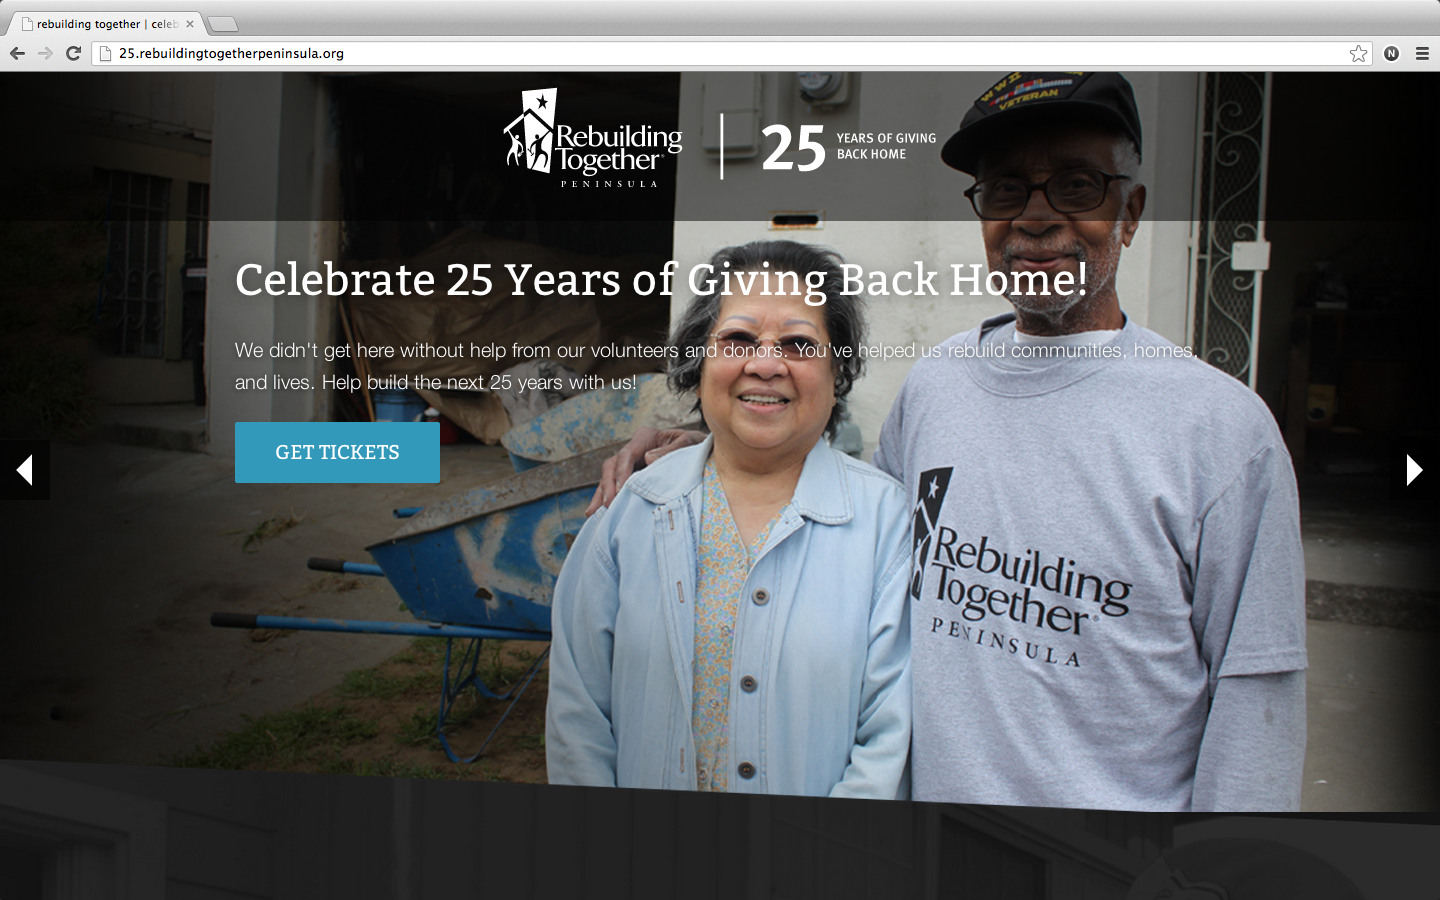 screenshot of the new Rebuilding Together Peninsula site